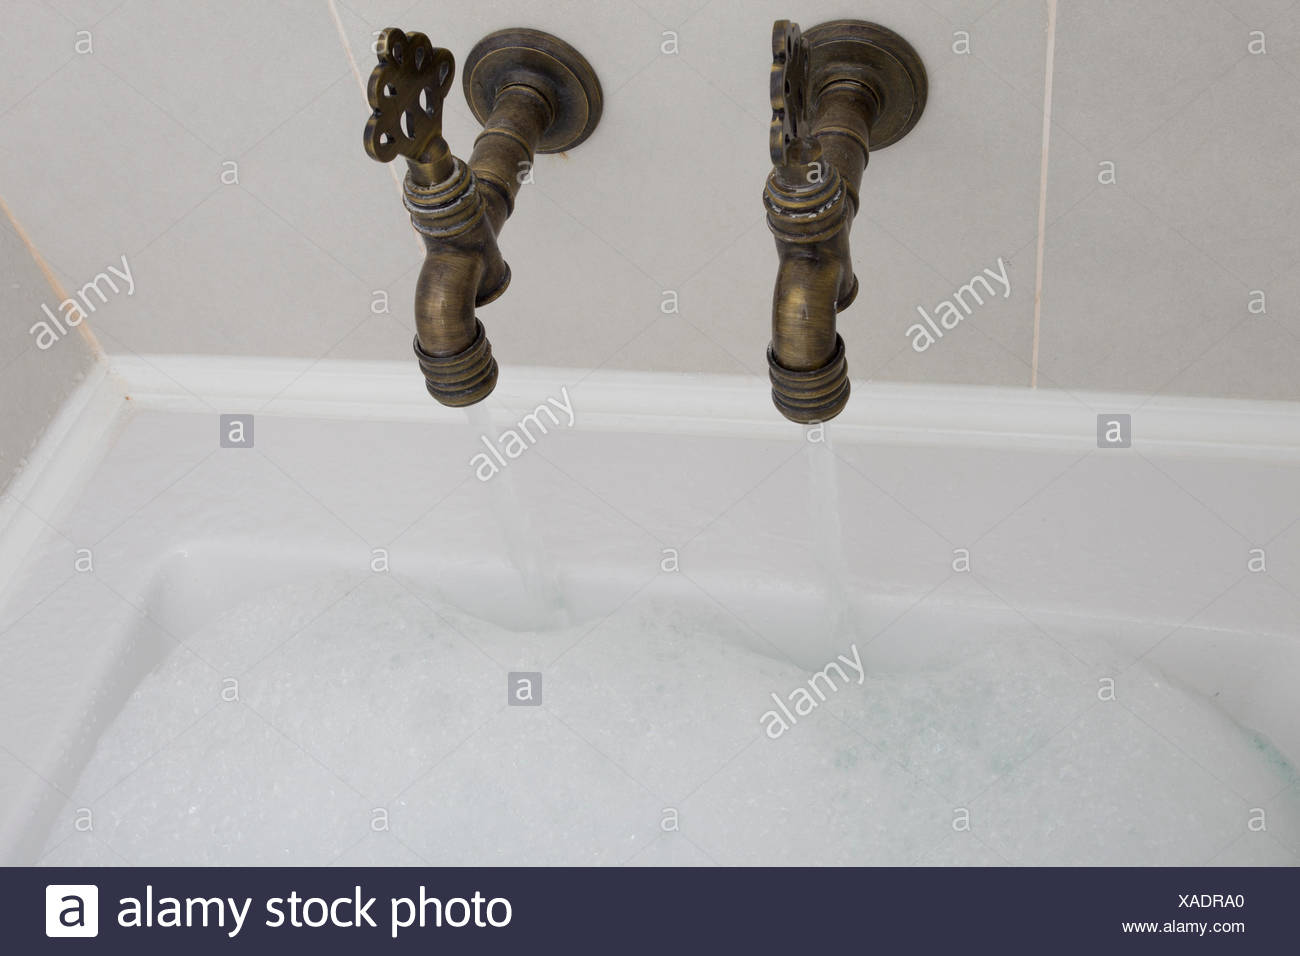 Old Fashioned Bathroom Taps Stock Photos & Old Fashioned Bathroom ...